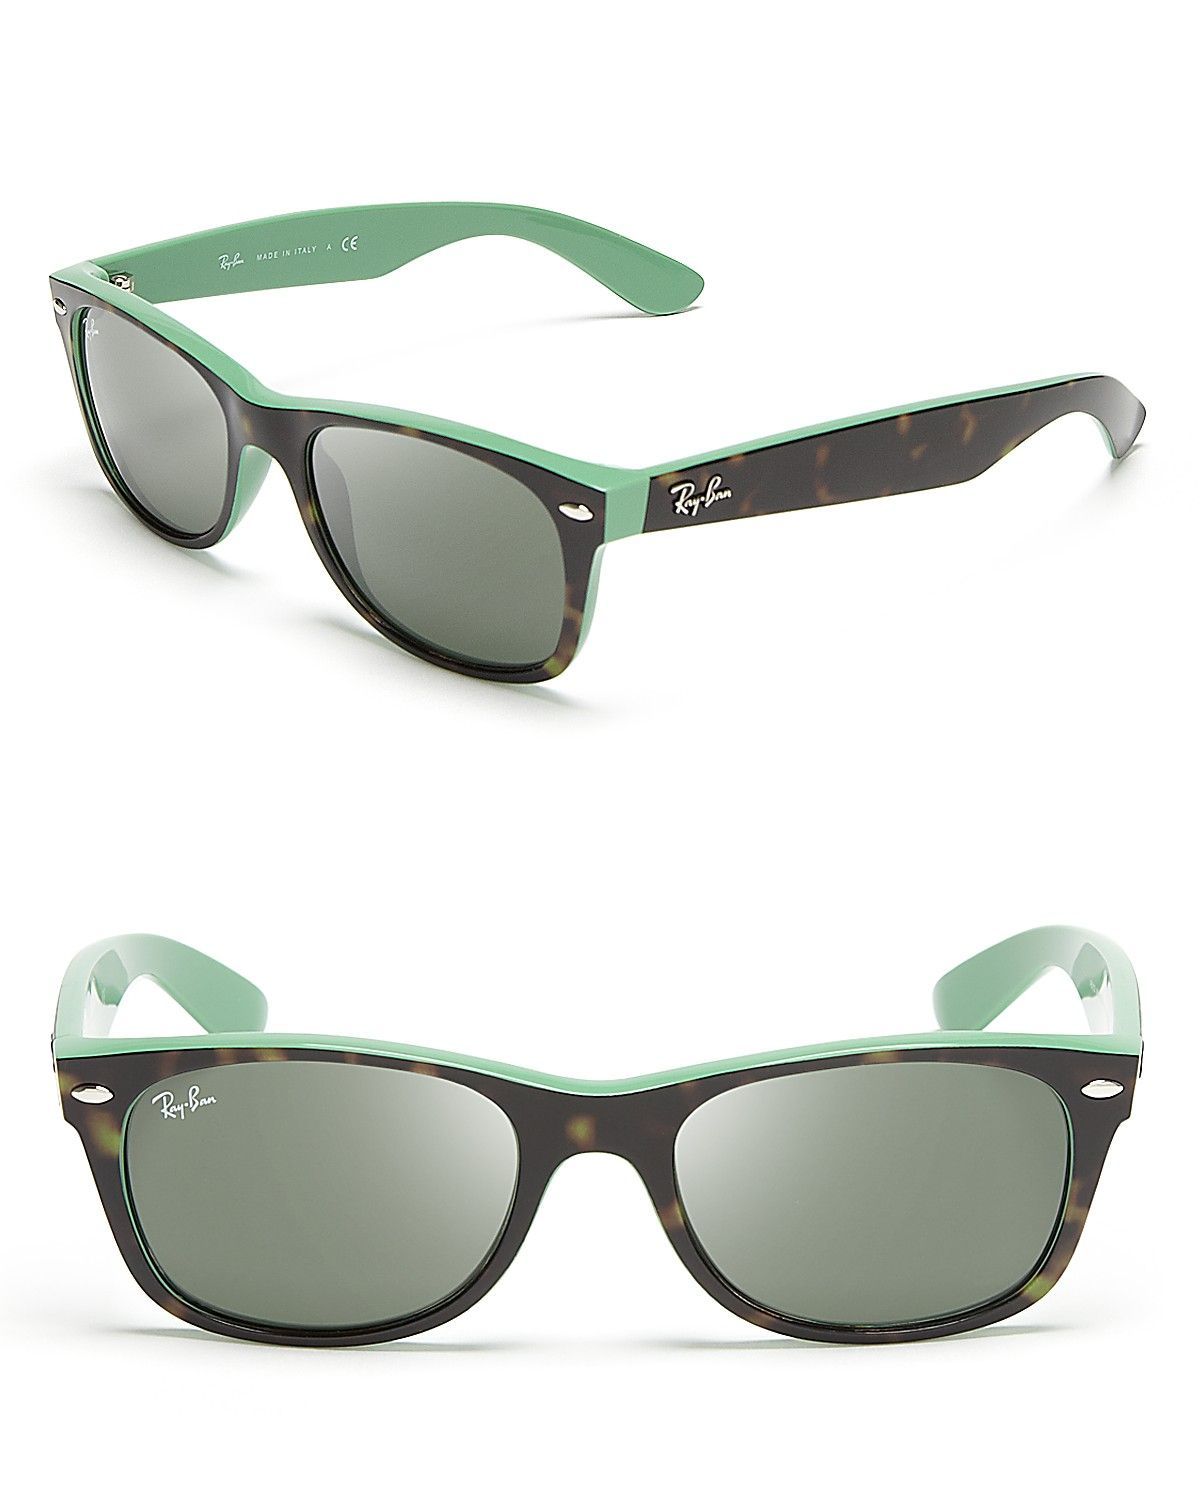 1000+ images about Ray Ban on Pinterest | Ray ban aviator, Ray bans and Ray ban sunglasses